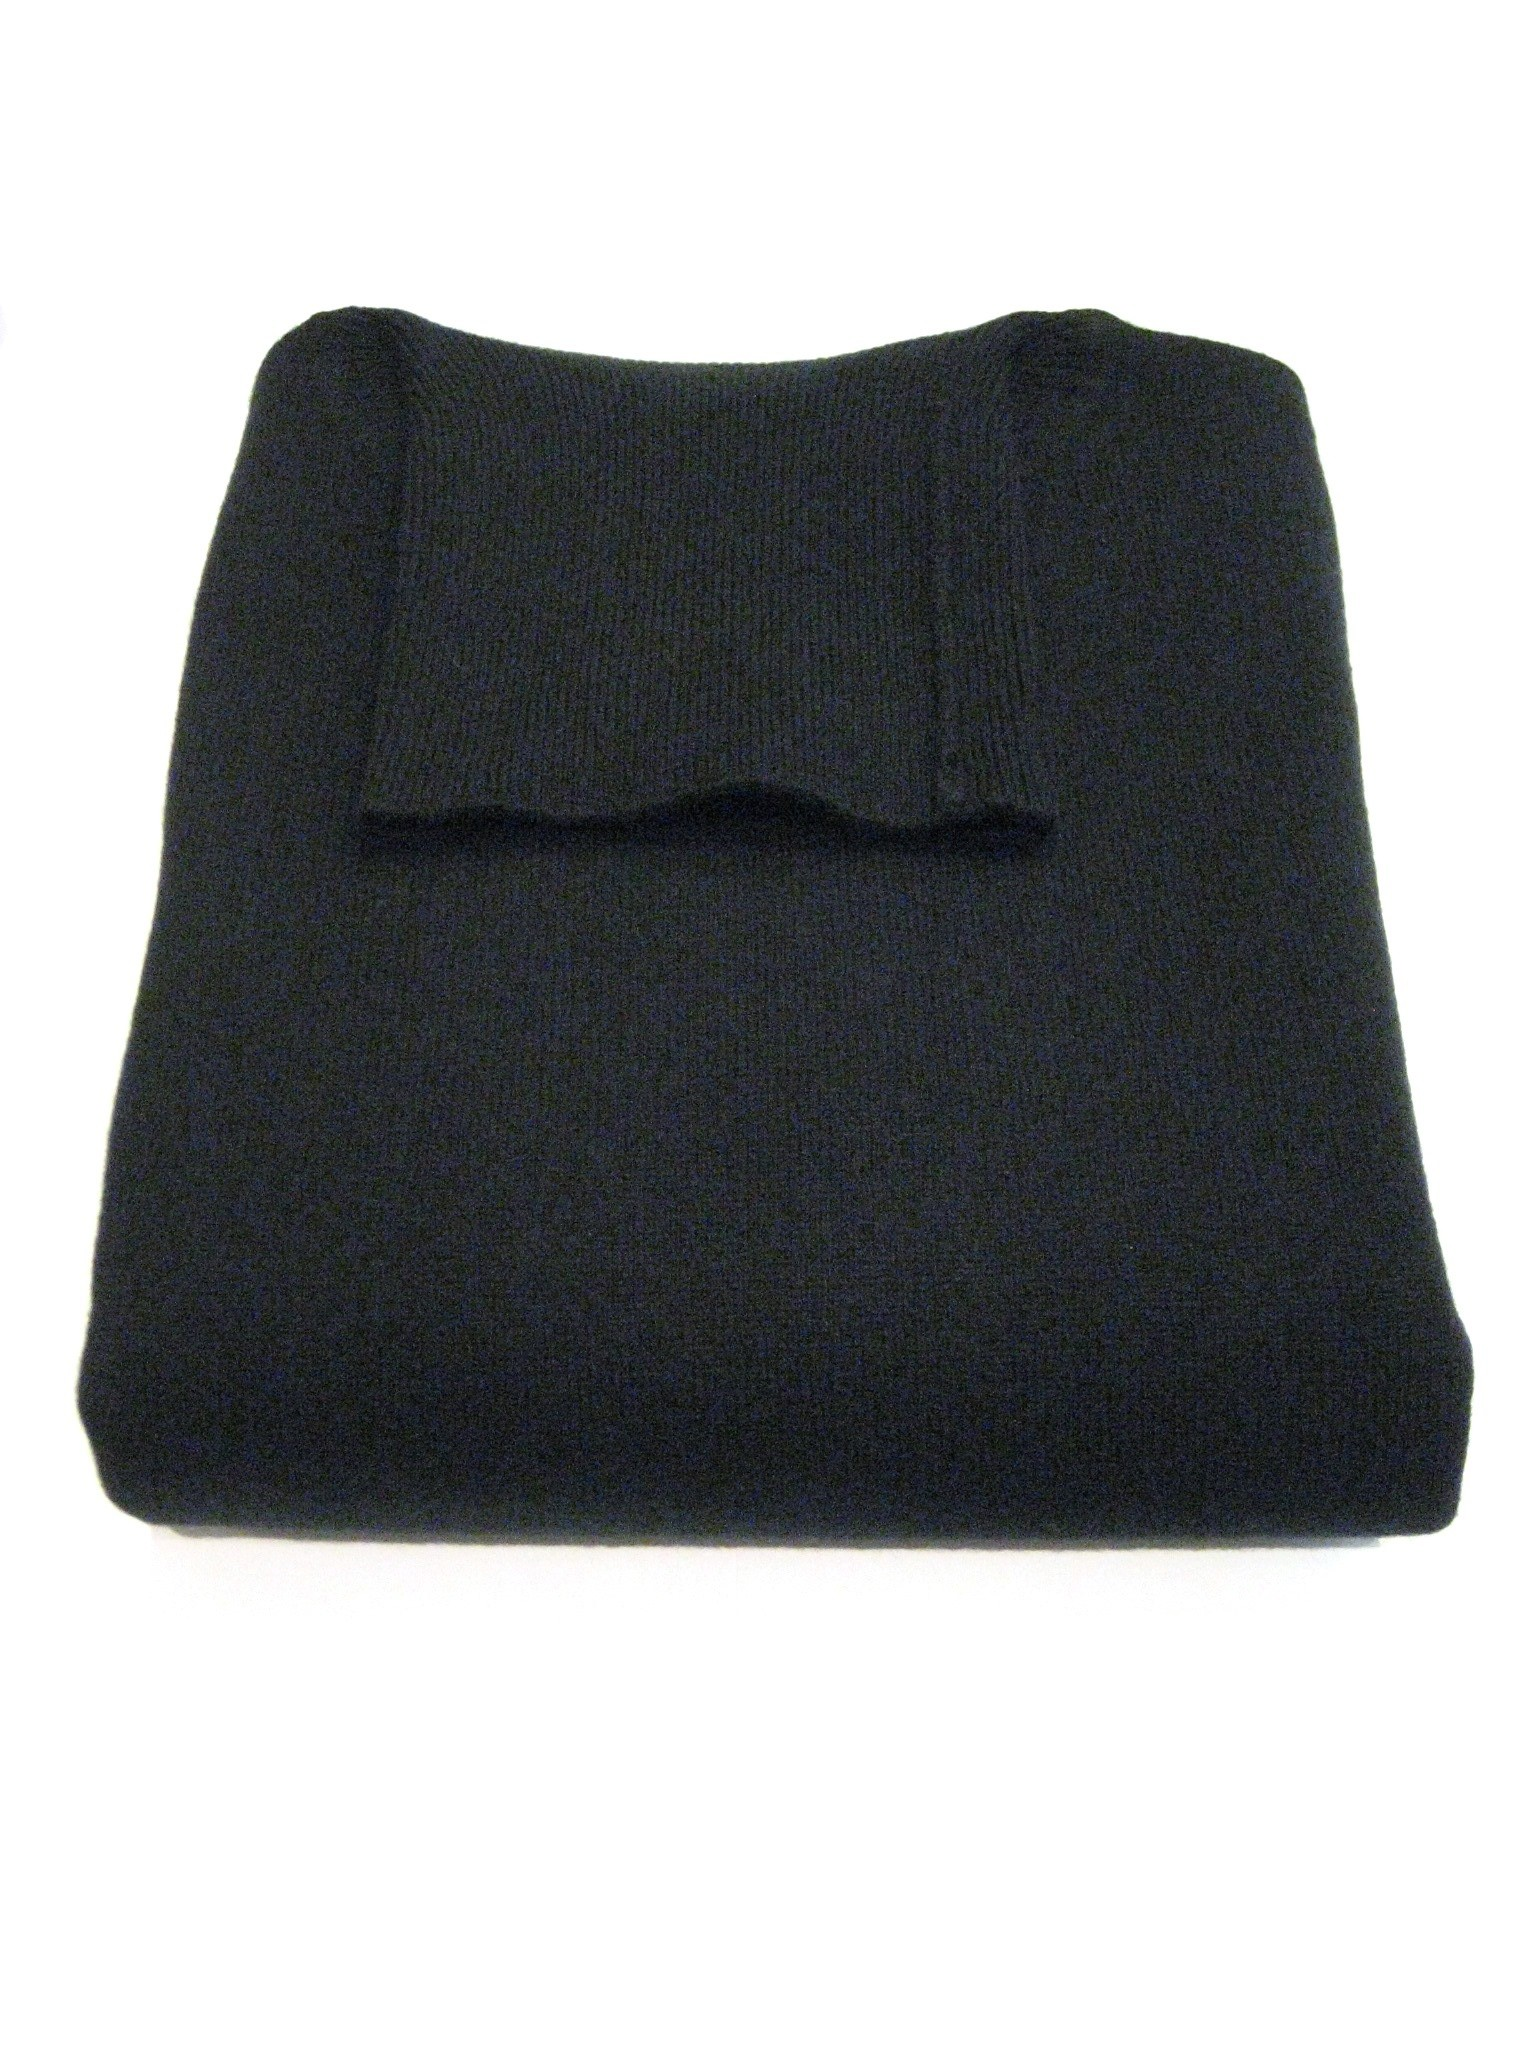 Black Men's Roll Neck Sweaters - 100% Cashmere Made in Scotland